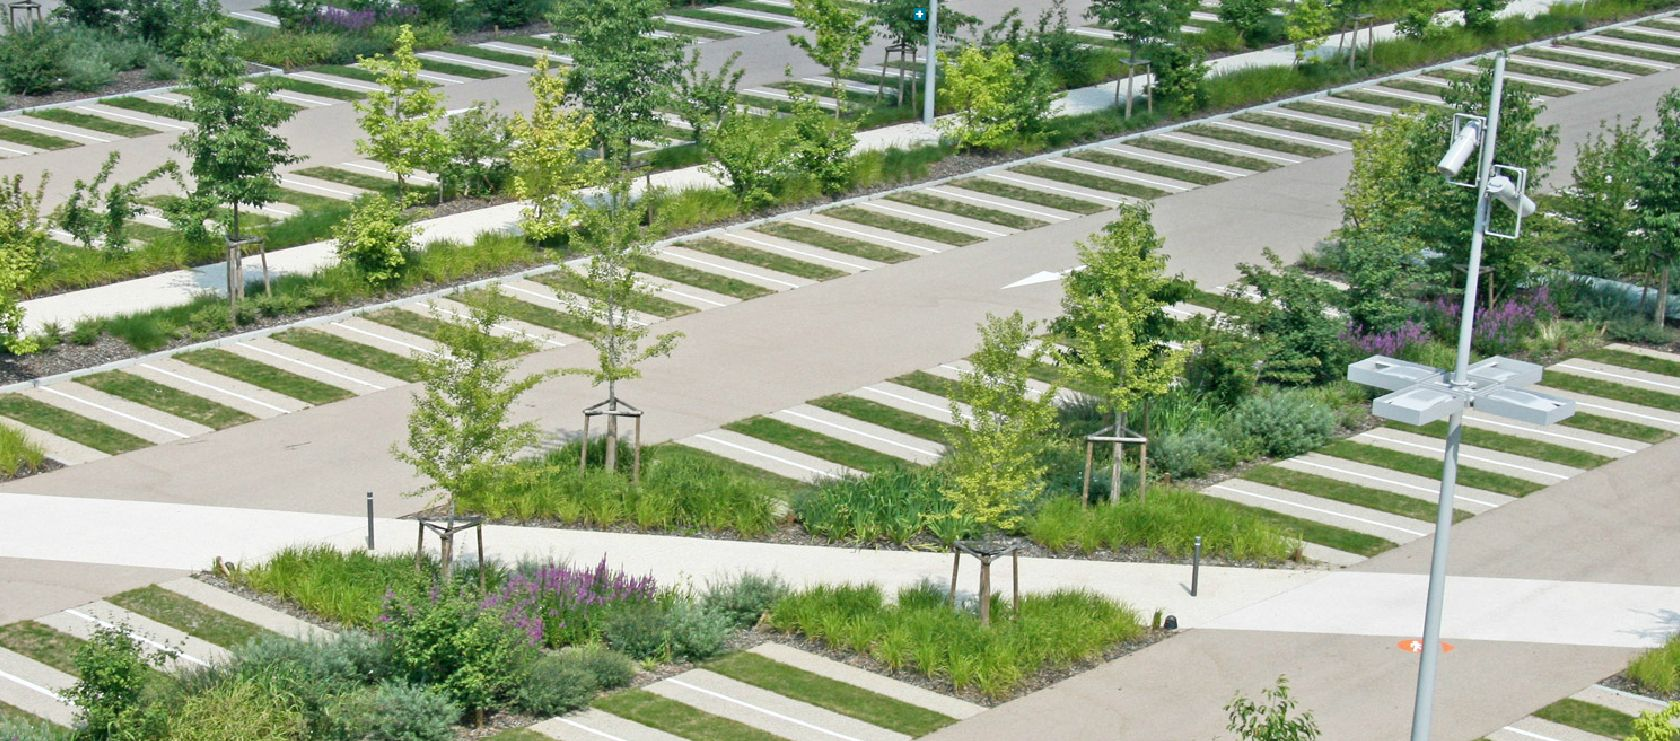 Landscape architecture parking lot plan landscape a for Landscape architecture